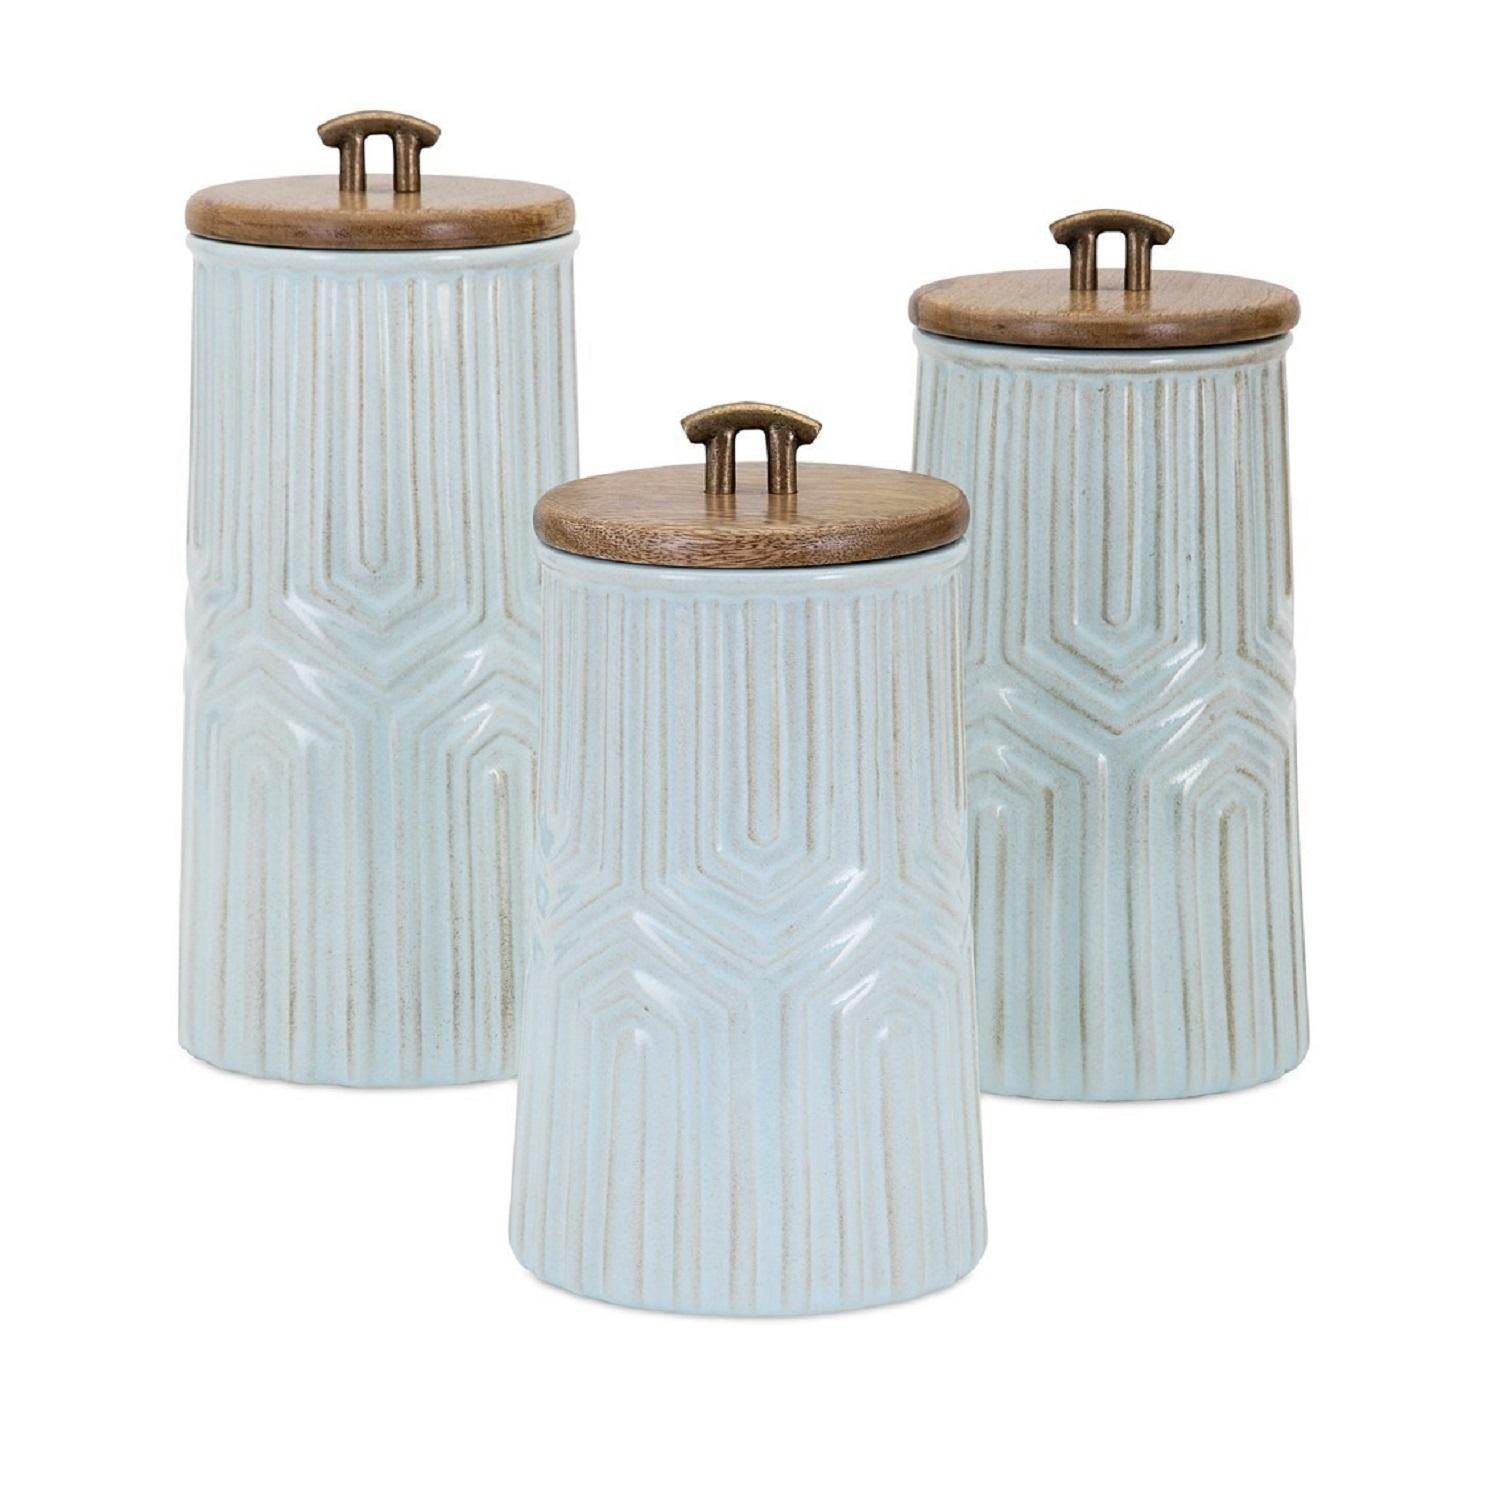 Set of 3 Decorative Blue Glaze Ceramic Canisters with Brass Handles 11.75""